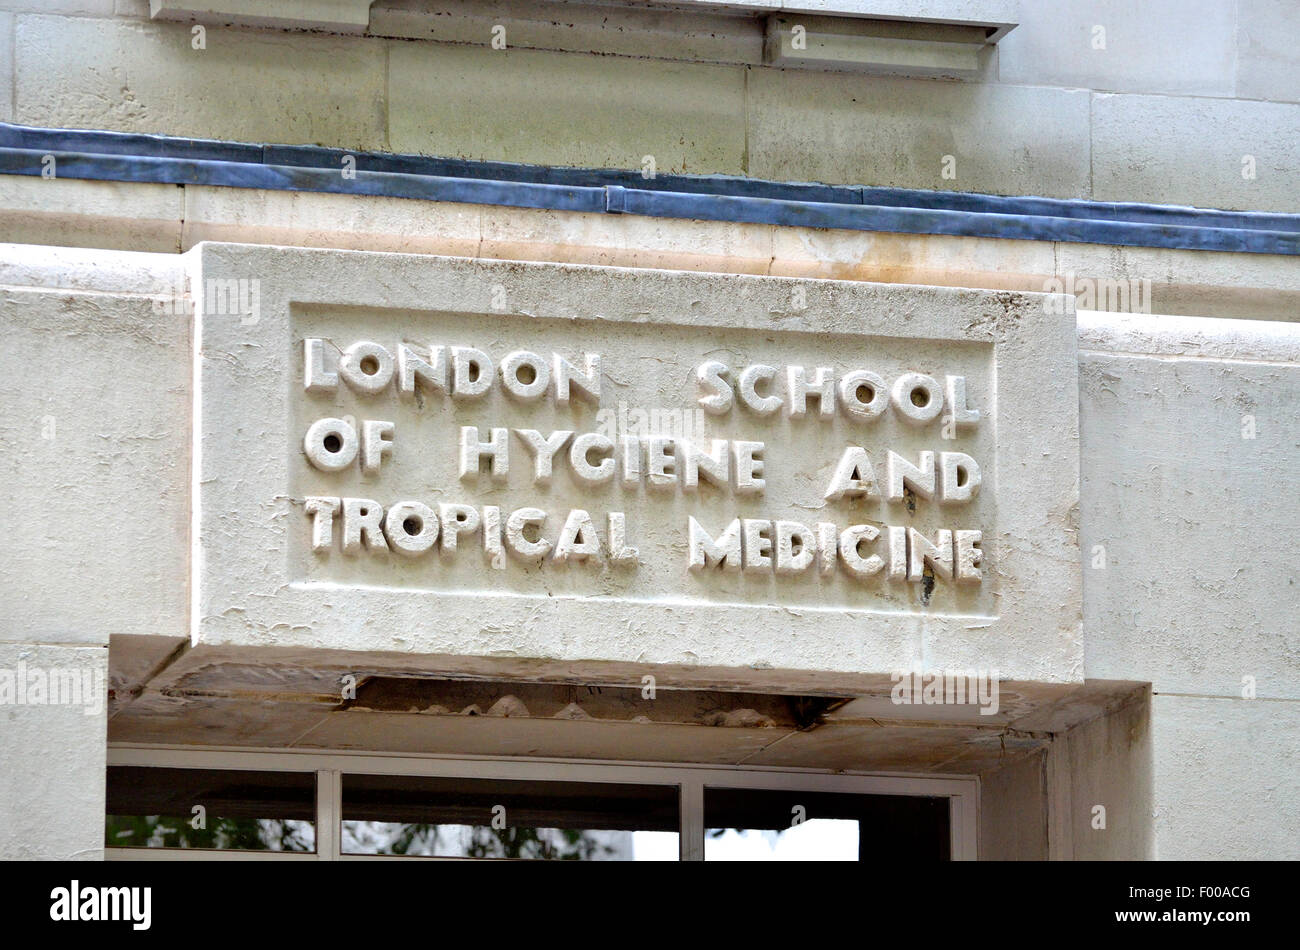 London, England, UK. London School of Hygiene and Tropical Medicine - detail above the main door on Gower Street Stock Photo